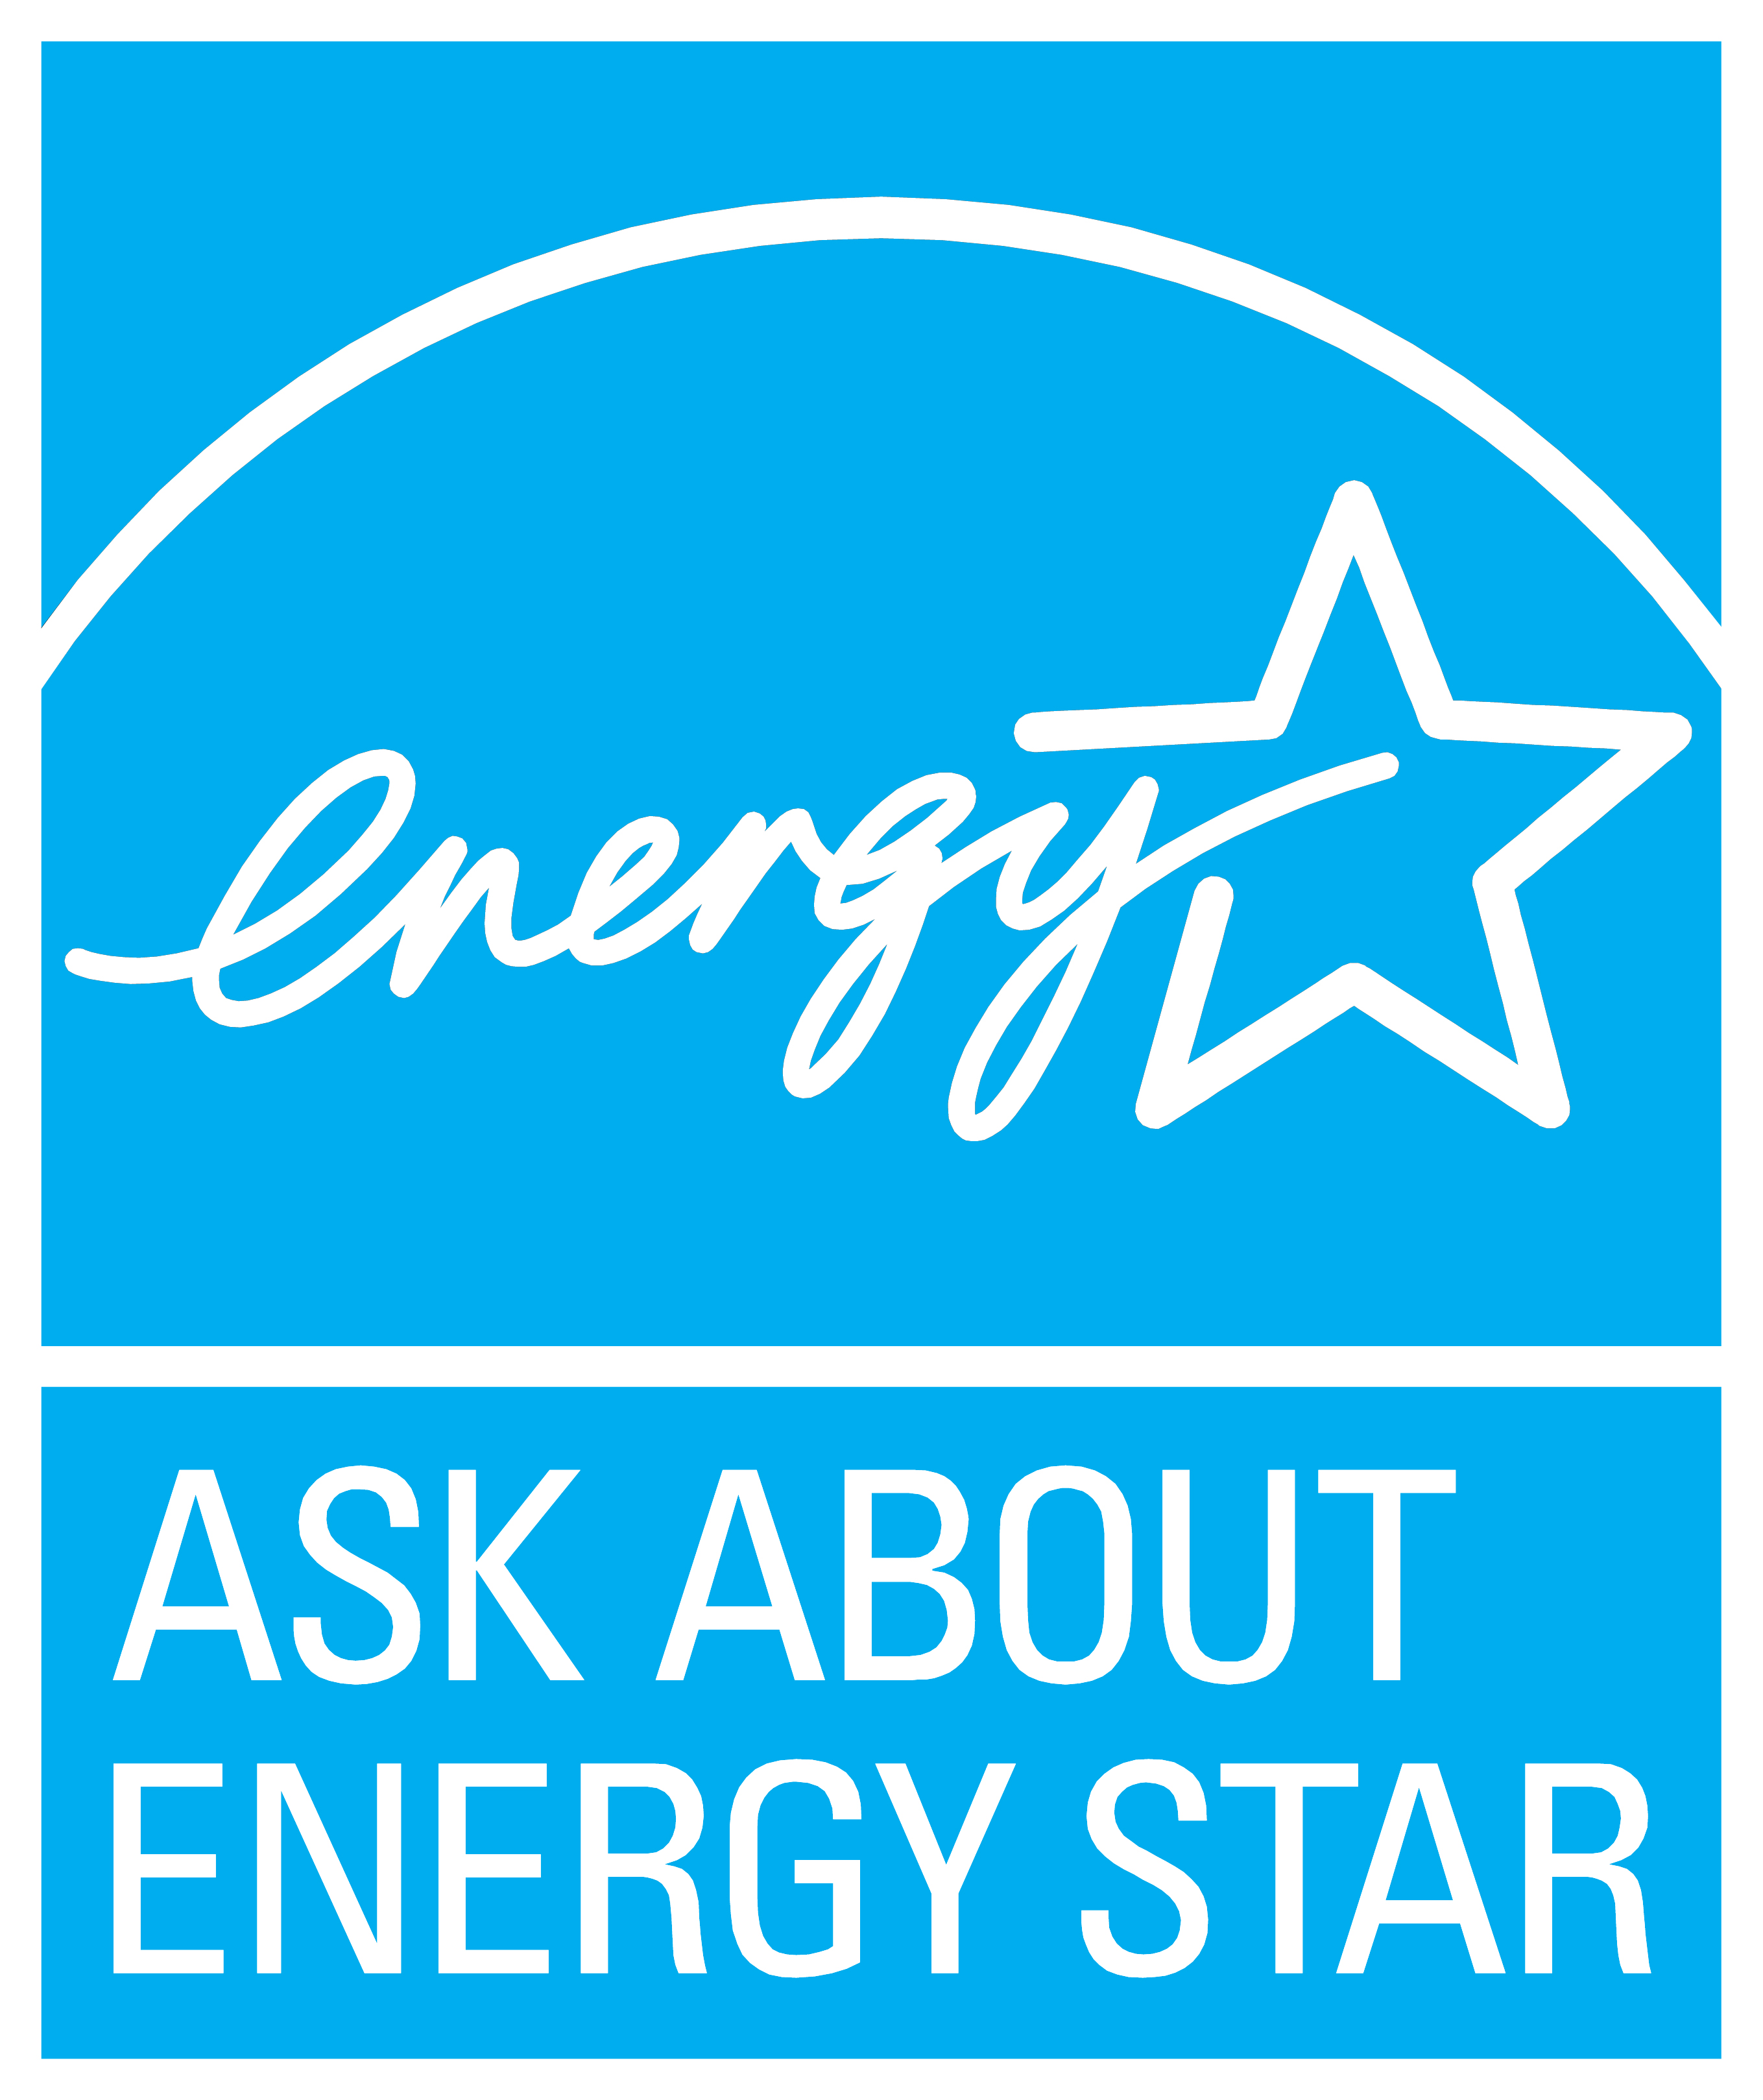 energystar askabout?sfvrsn=153744c0_2 energy efficient gsx16 air conditioner from goodman  at bayanpartner.co